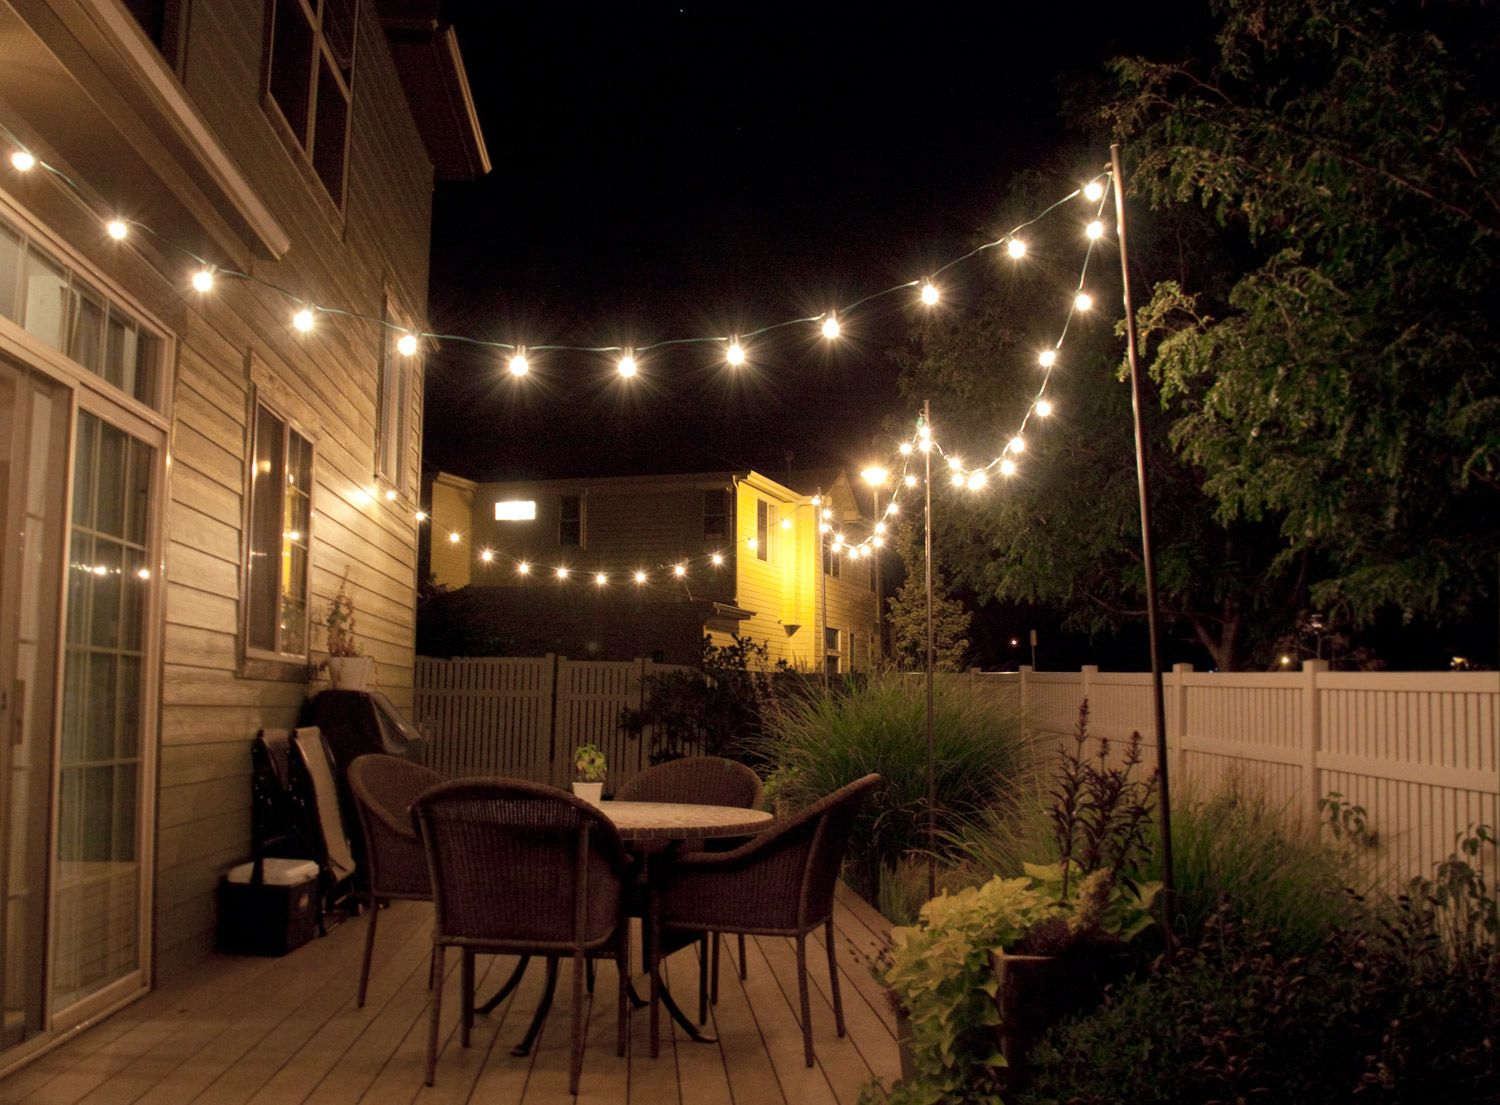 String Patio Lights Inspiration How To Make Inexpensive Poles To Hang String Lights On  Café Style Decorating Design